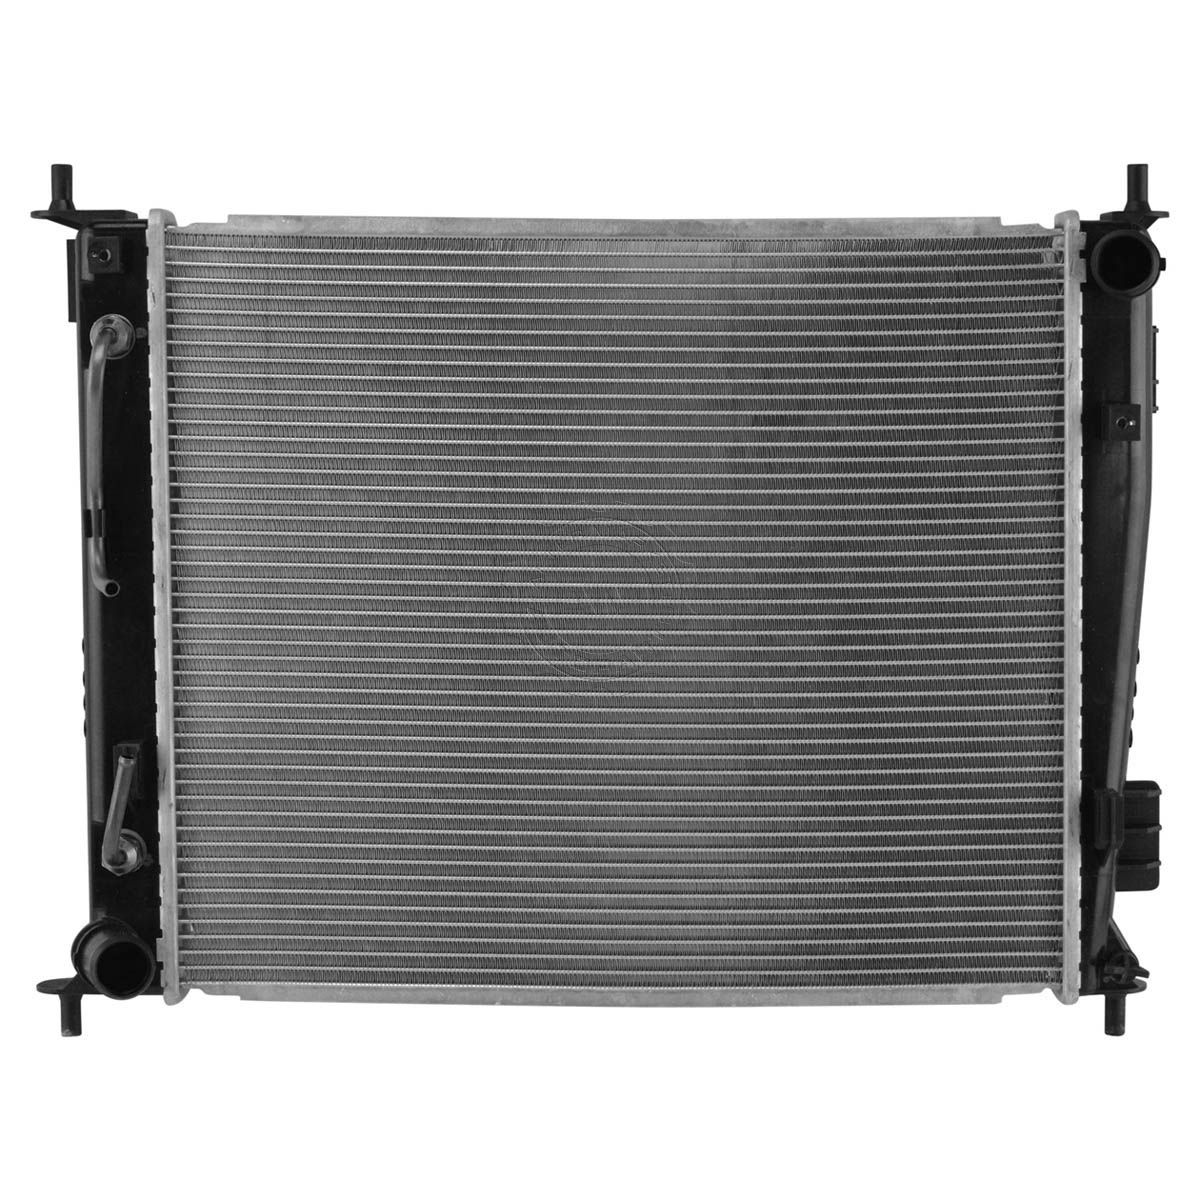 Radiator Assembly Plastic Tanks Aluminum Core Direct Fit For Kia Sedona Coolant Reservoir 3 Of 6 Soul 16l New